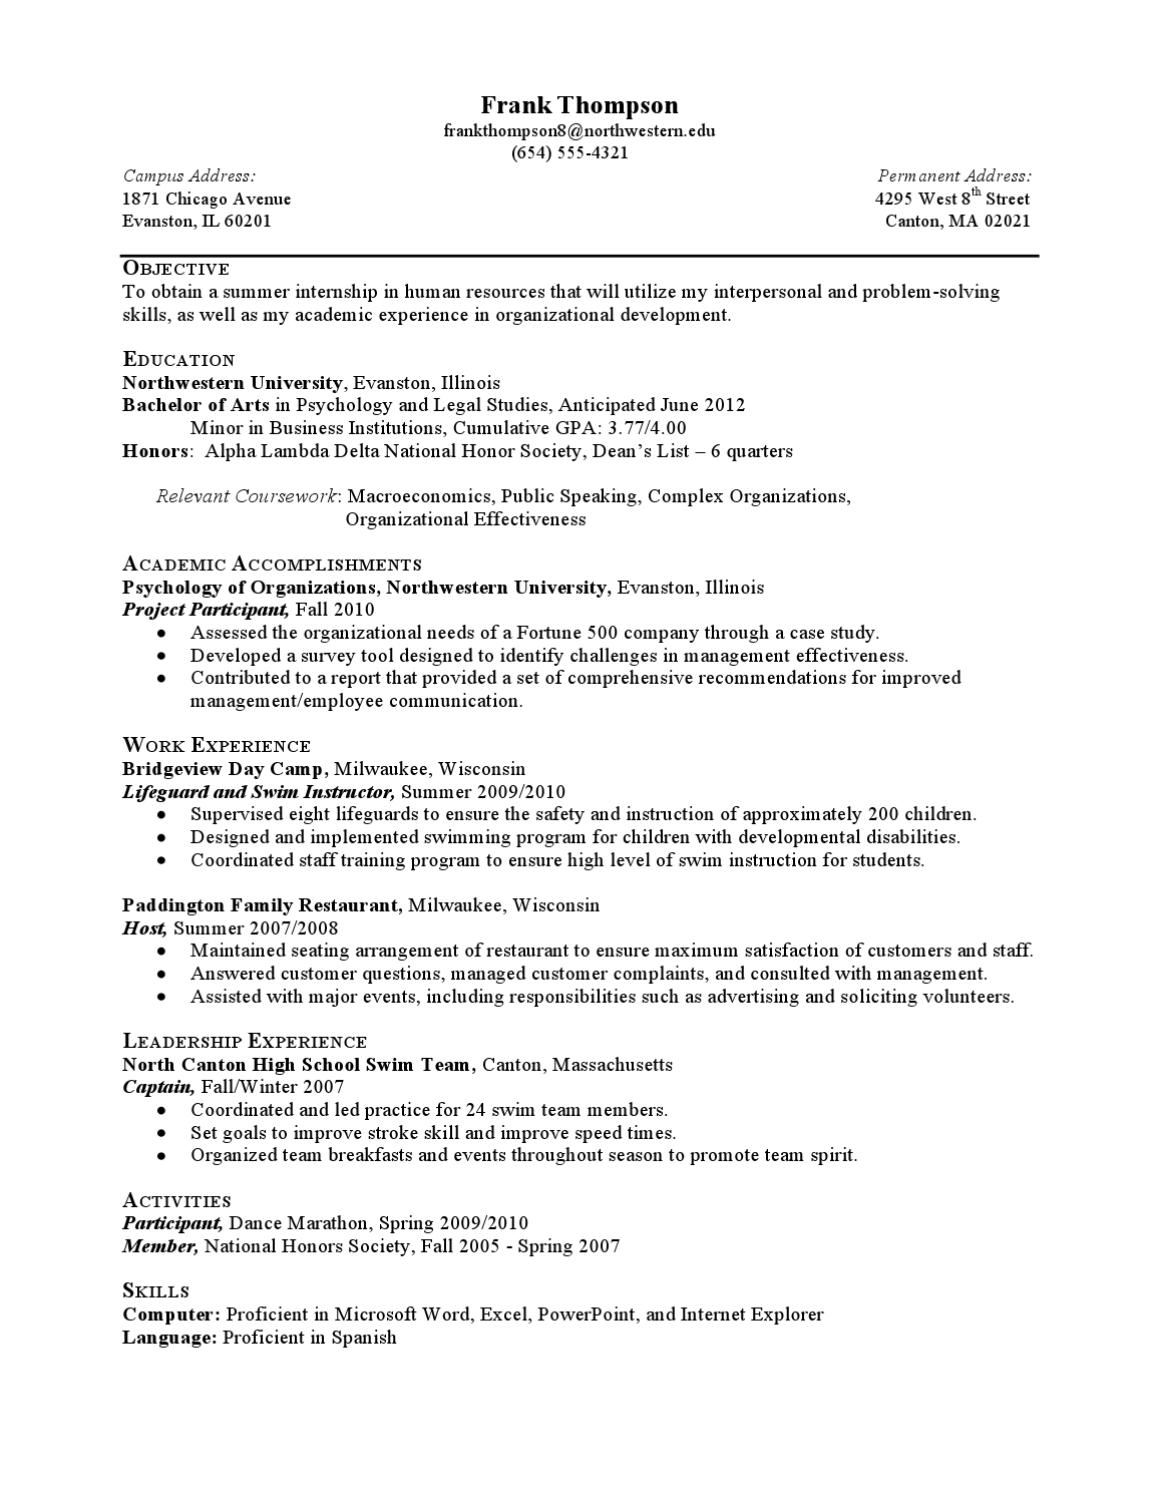 Internship Resume Sample - Less Experienced by Northwestern ...